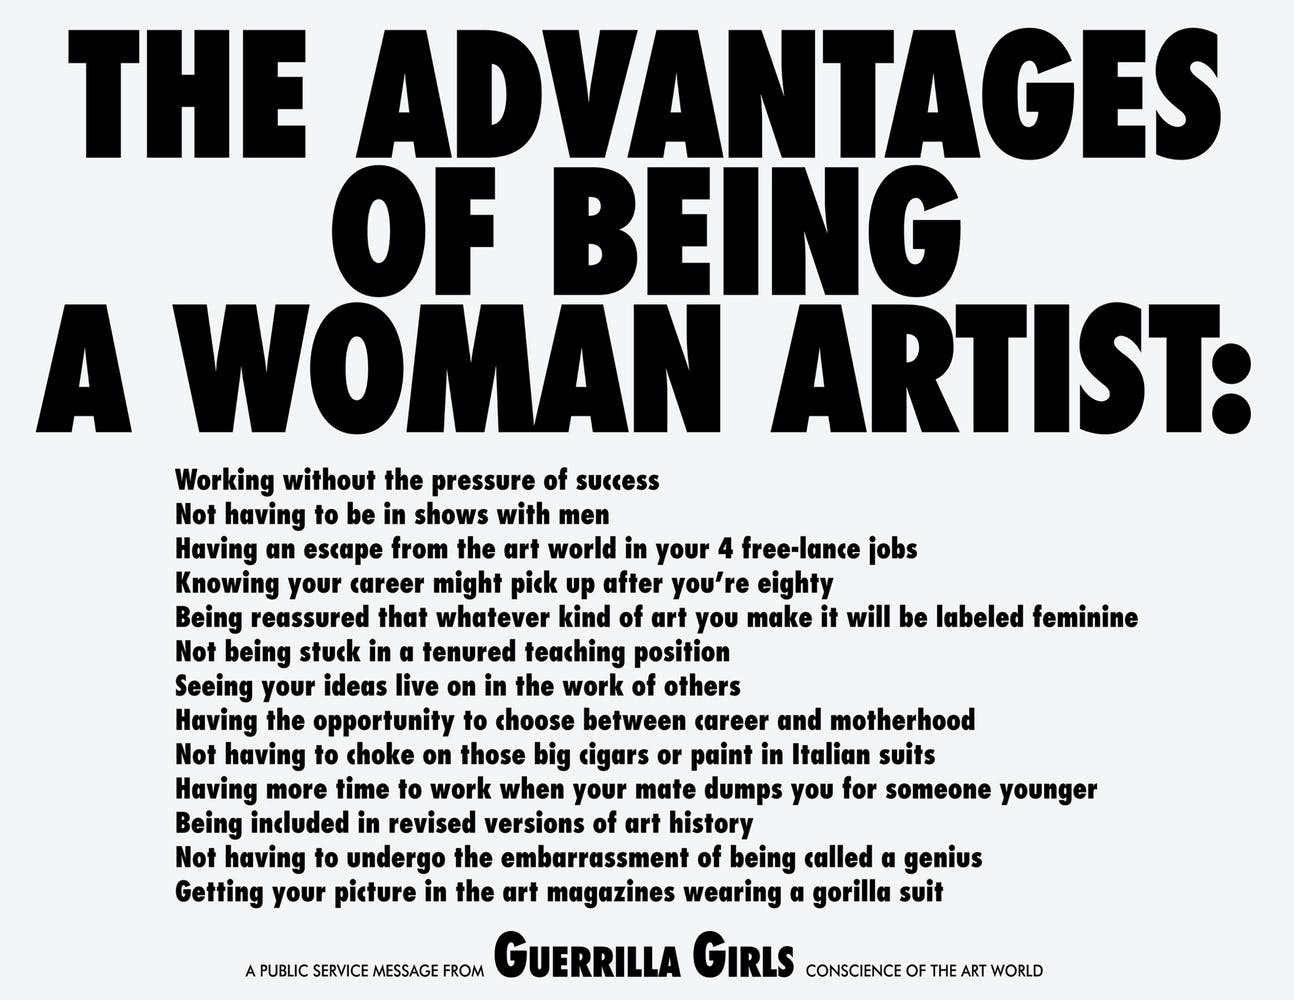 Guerrilla Girls, The Advantages of Being A Woman Artist, 1988